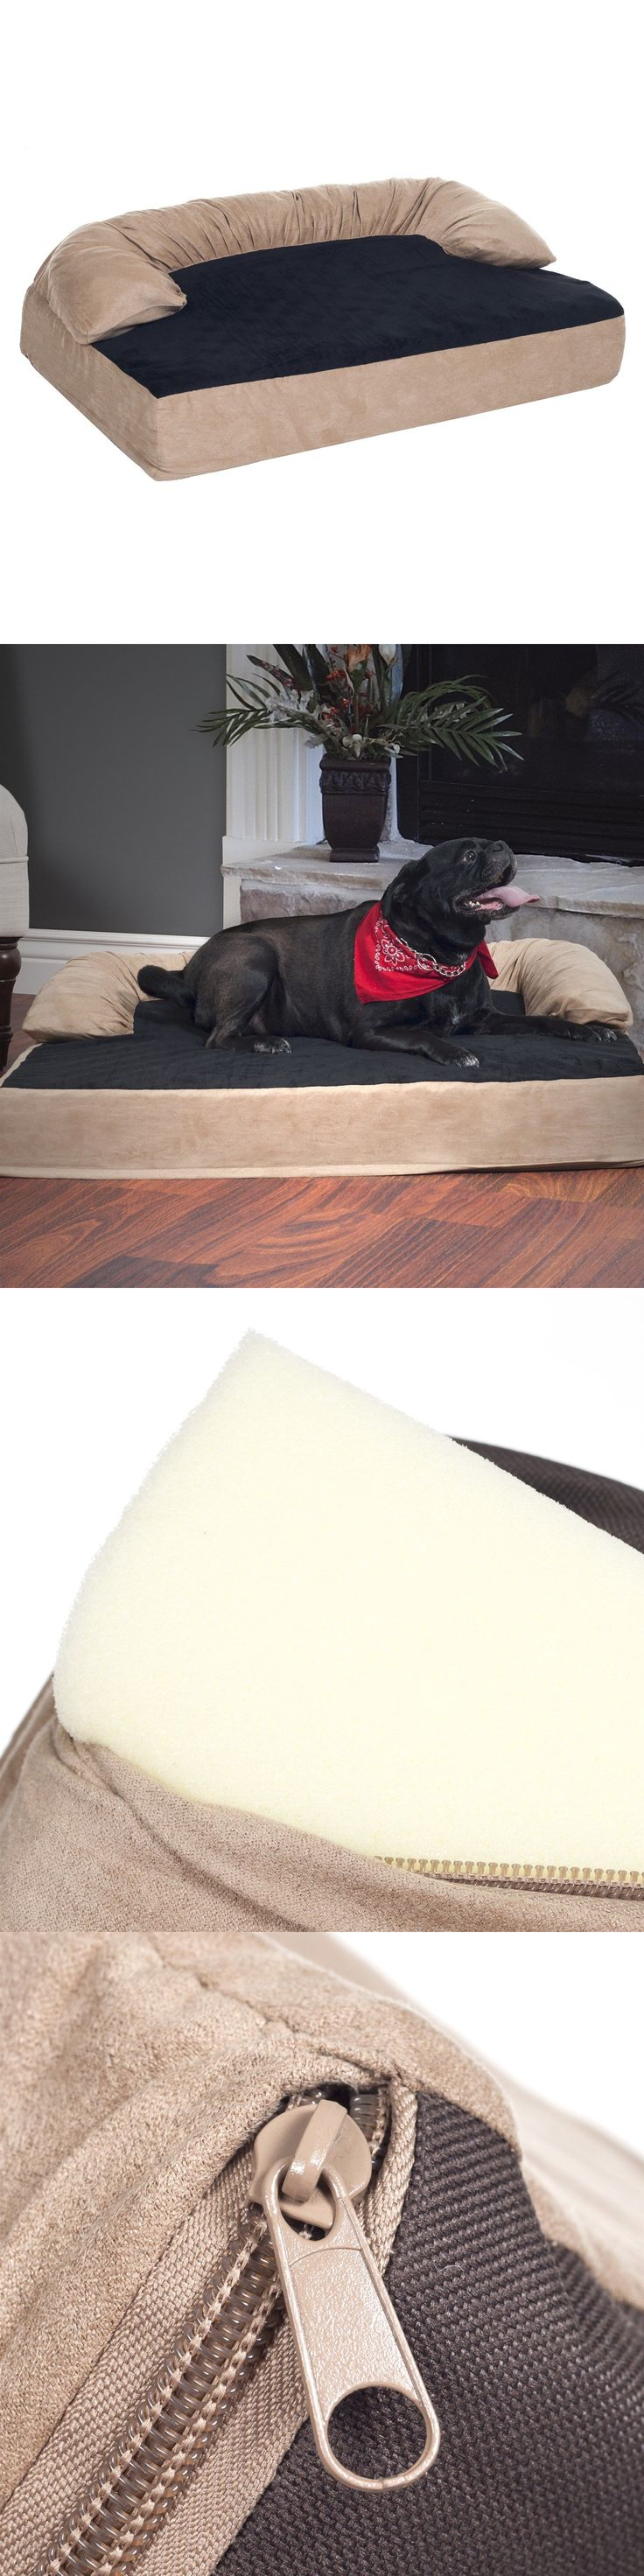 Beds 20744: Paw Orthopedic Memory Foam Joint Relief Bolster Dog Bed 25 X 17 Inches Small -> BUY IT NOW ONLY: $32.99 on eBay!